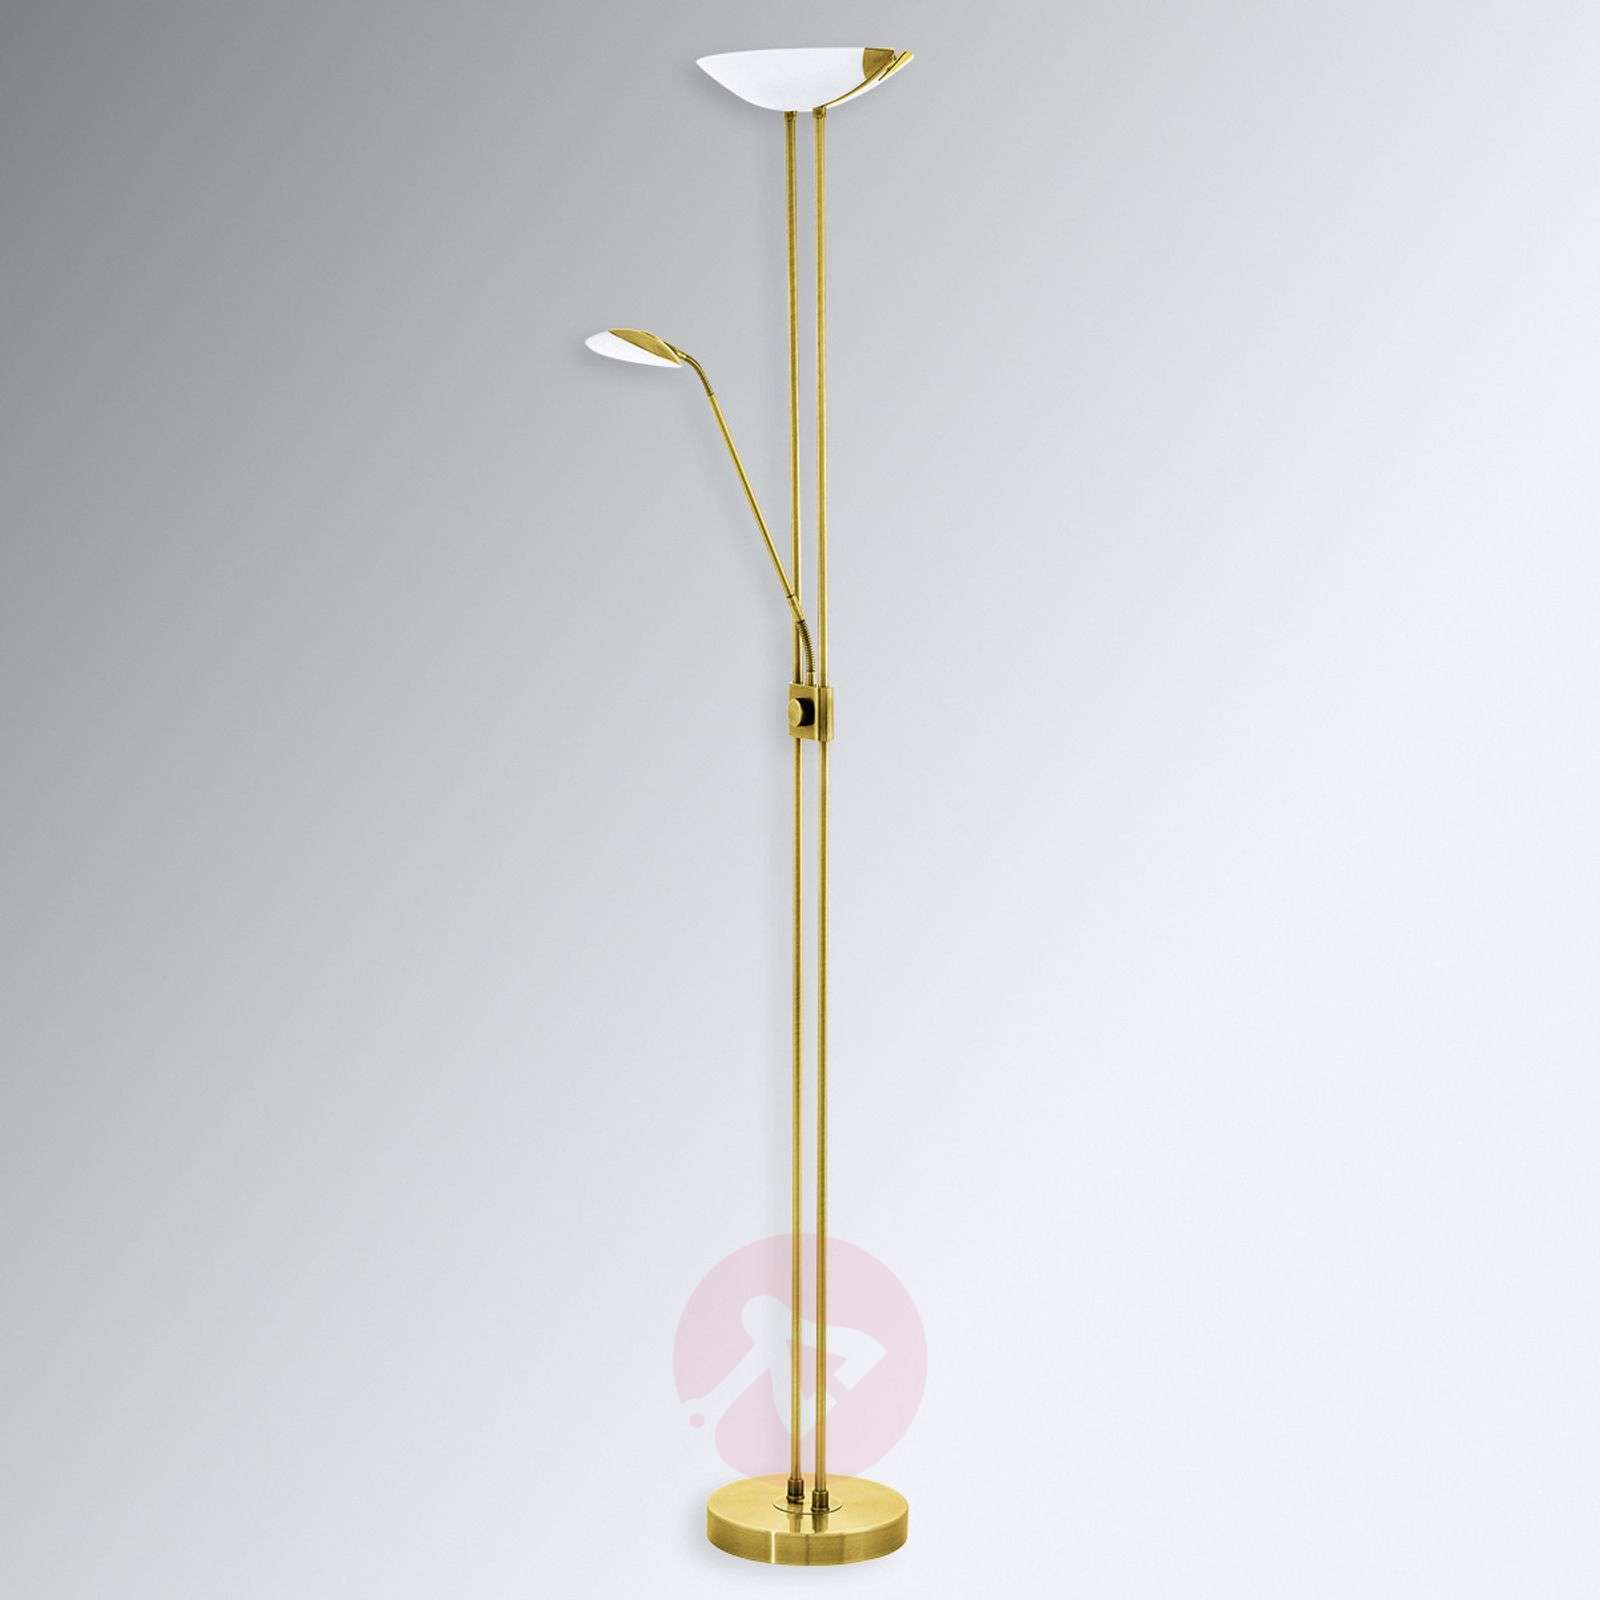 Led staande lamp baya in messing look lampen